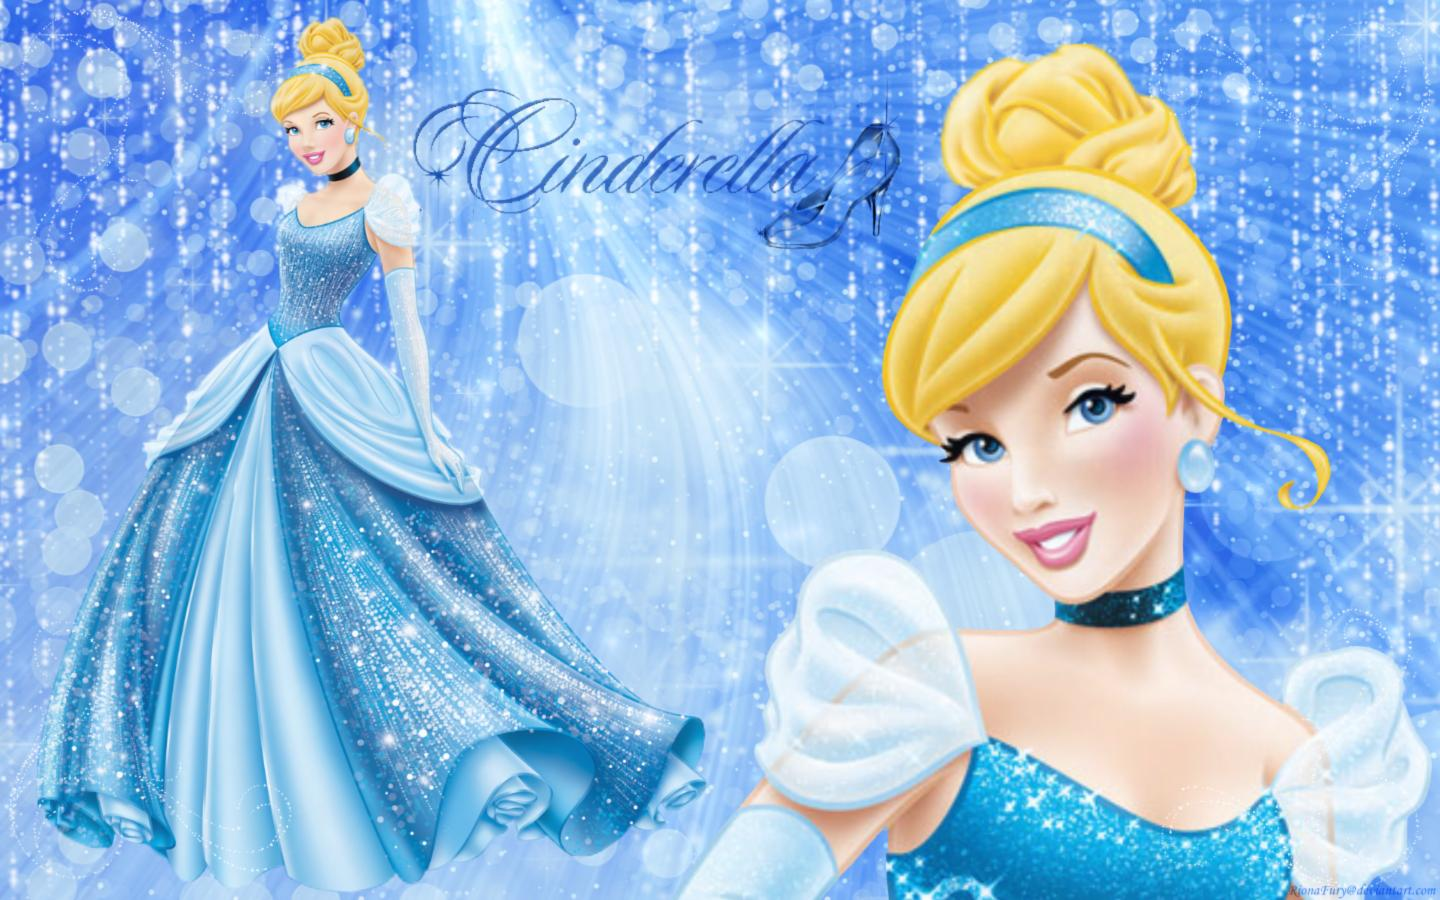 Disney Princess Sleeping Beauty Wallpaper 1440x900